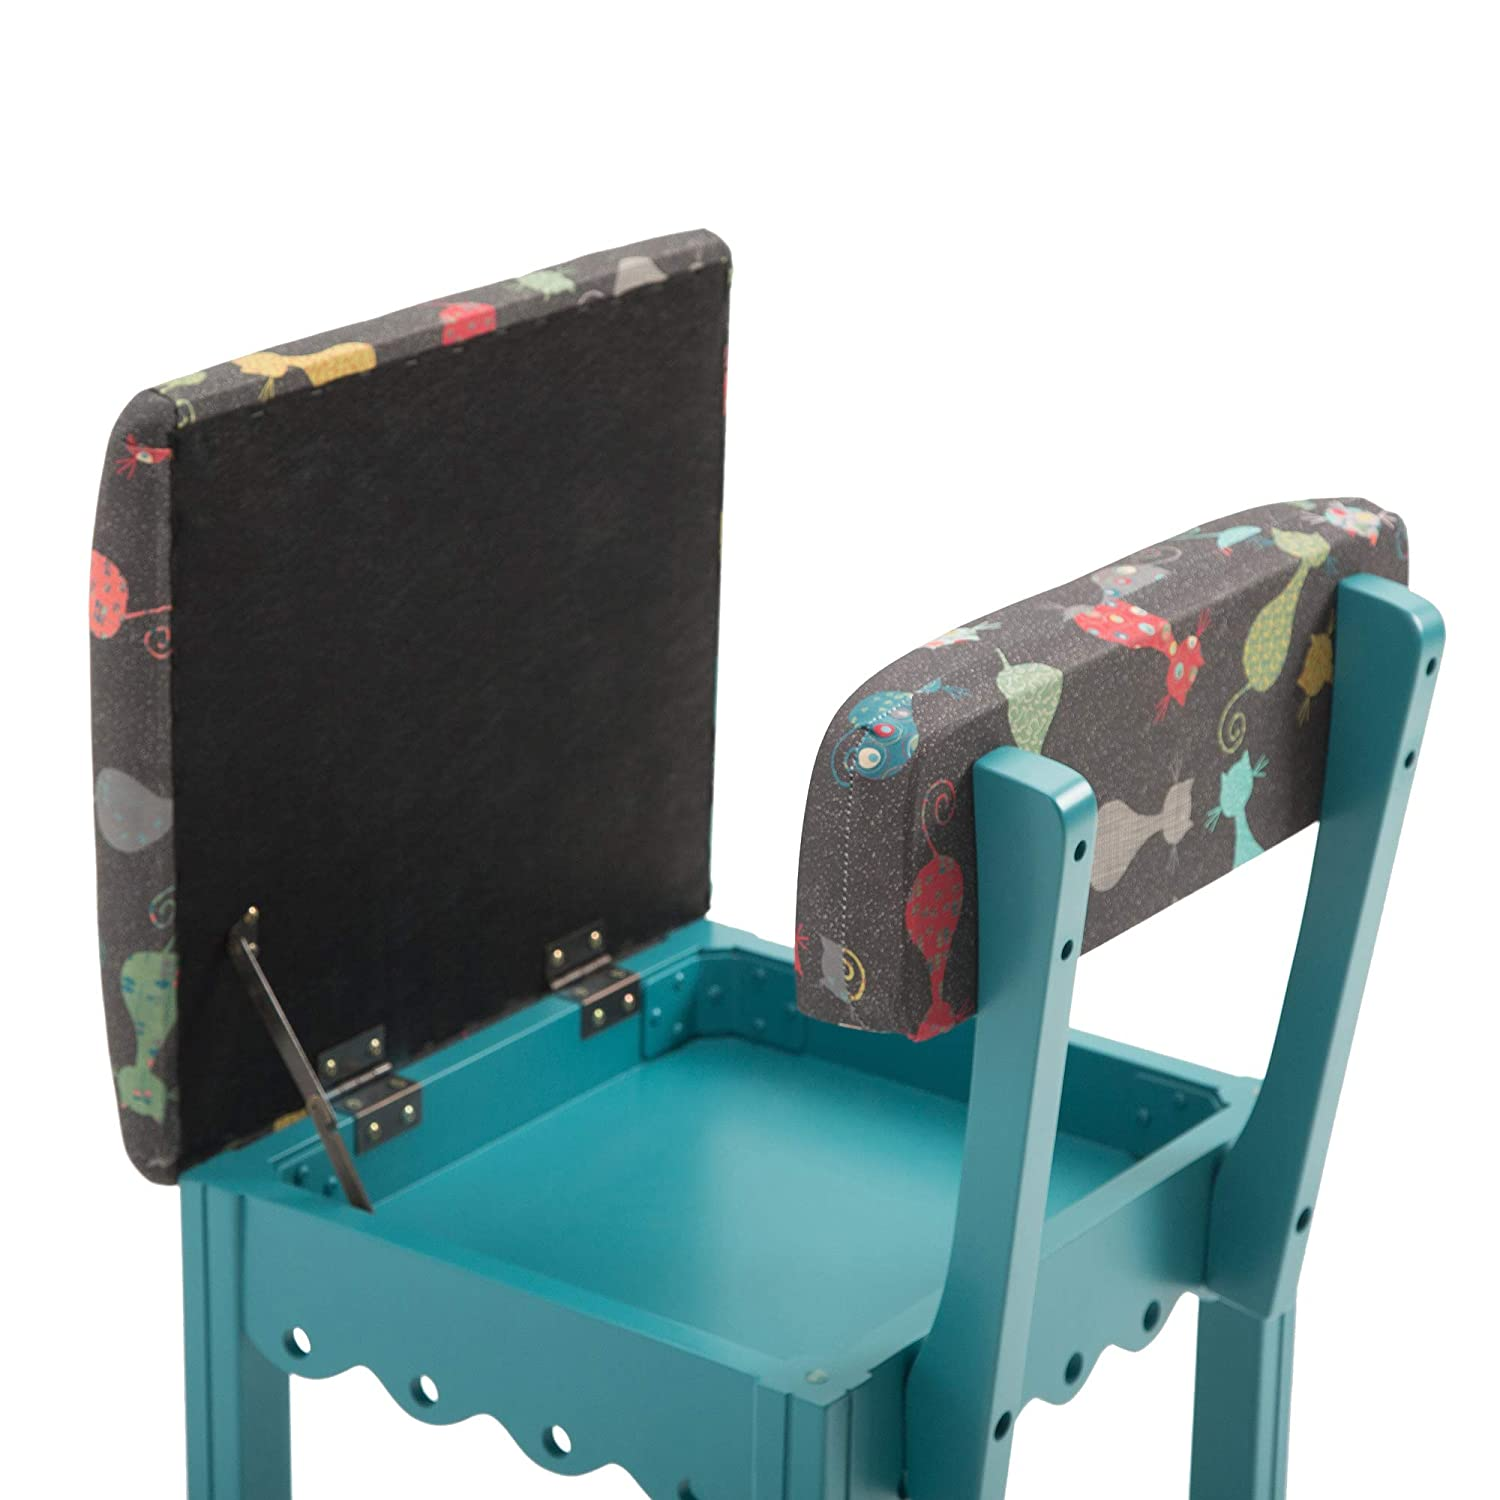 Arrow 6109 Jewel Tone Blue Wooden Chair with Grey Cat Fabric